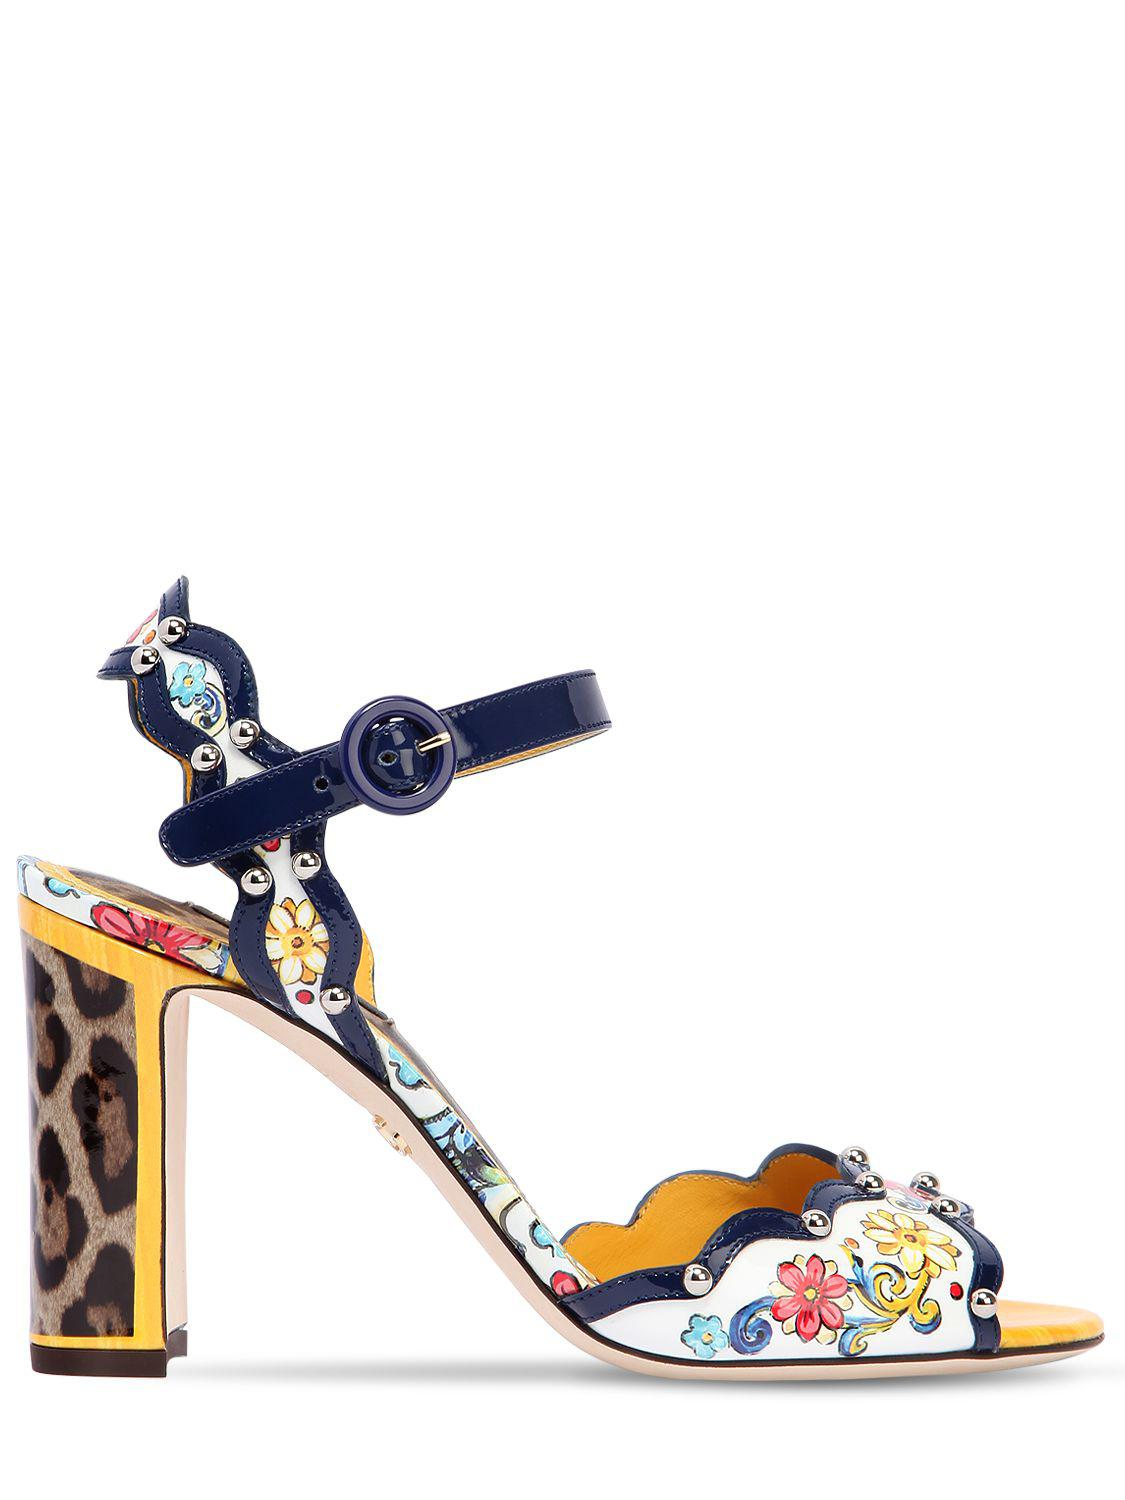 Dolce & Gabbana 90MM MAIOLICA PATENT LEATHER SANDALS dQEtZBrz